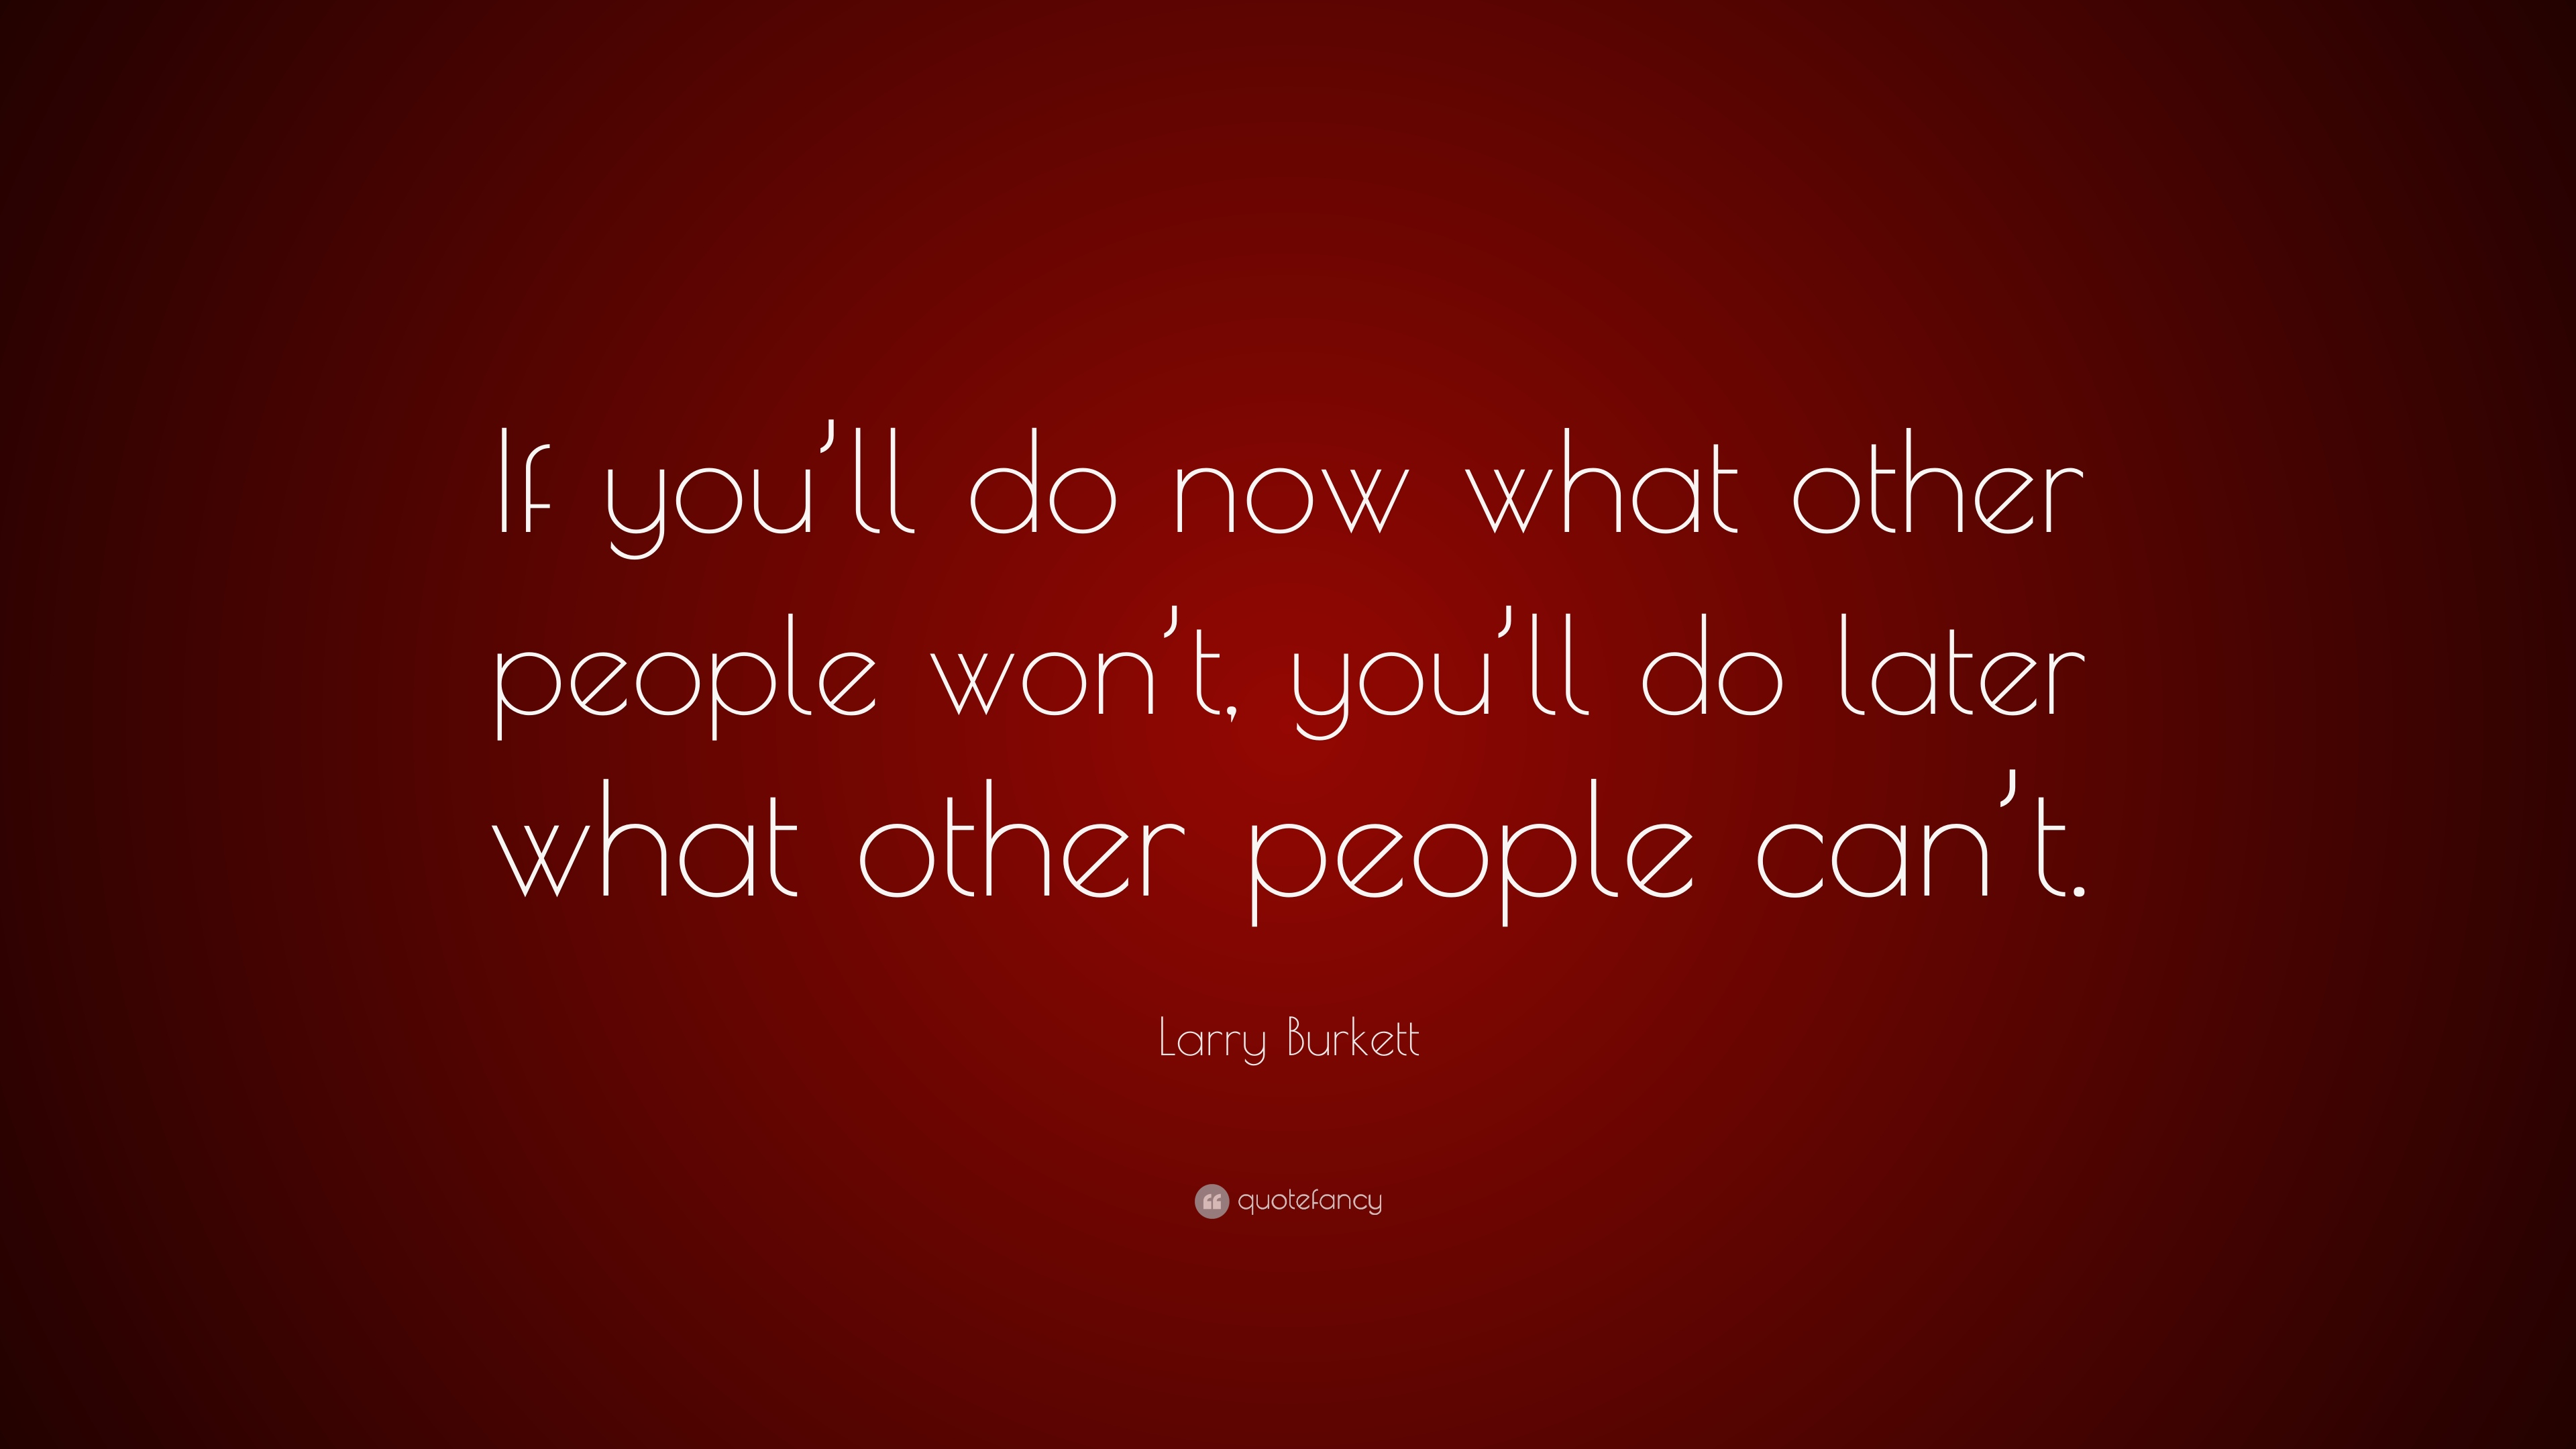 Larry Burkett Quote If You Ll Do Now What Other People Won T You Ll Do Later What Other People Can T 9 Wallpapers Quotefancy